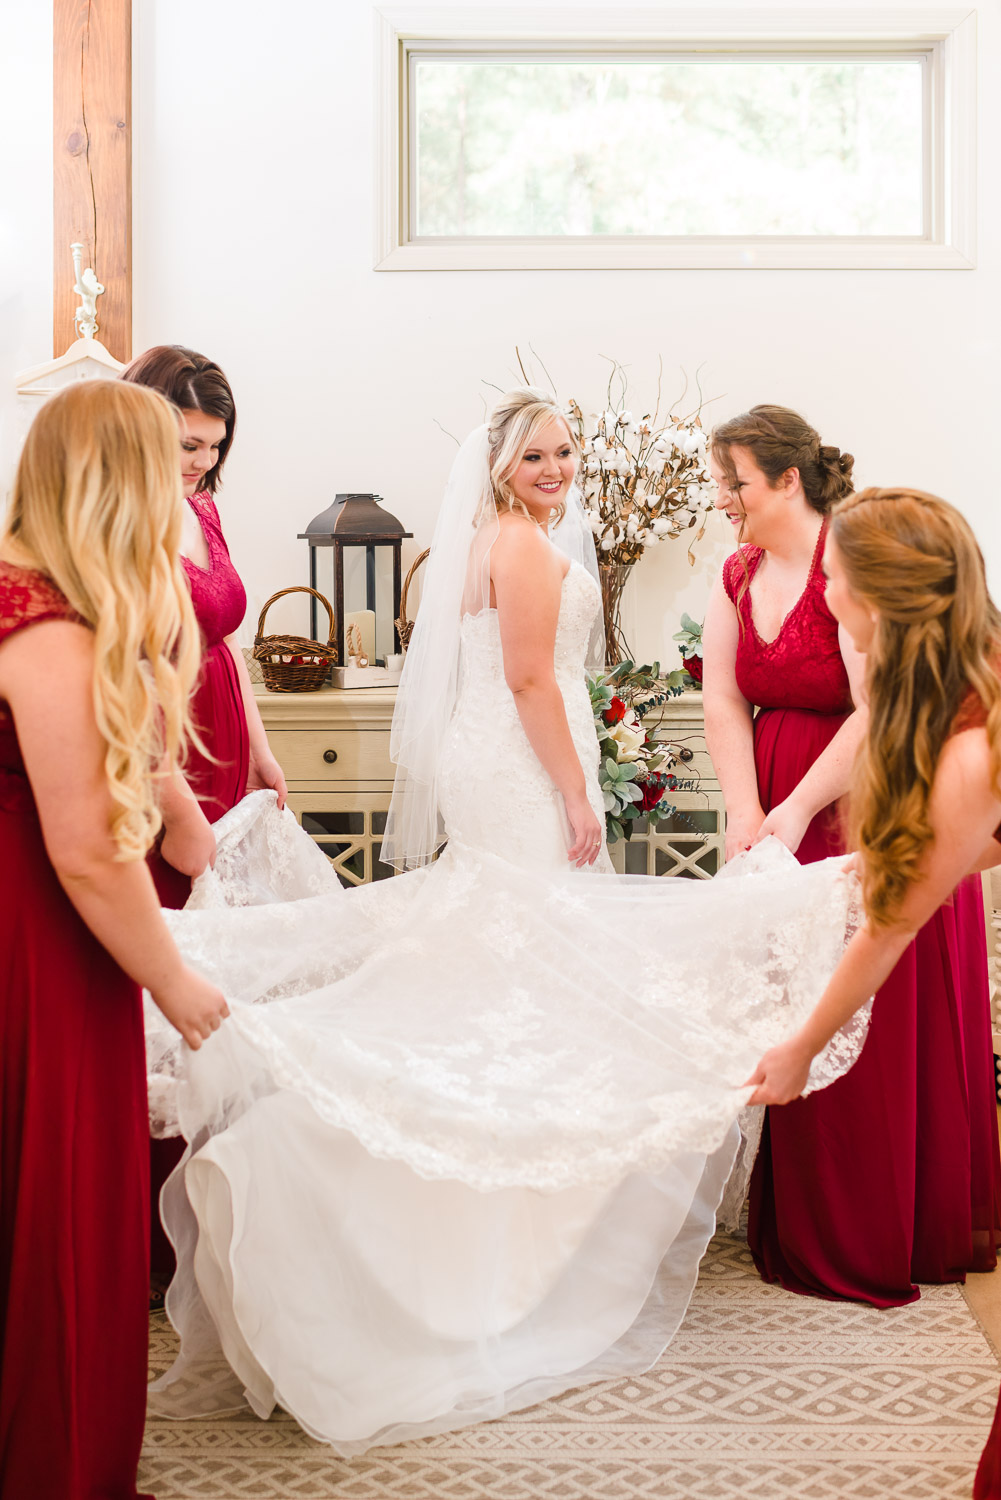 Bridesmaids wearing cranberry red dresses helping bride lay her train out on her wedding day.